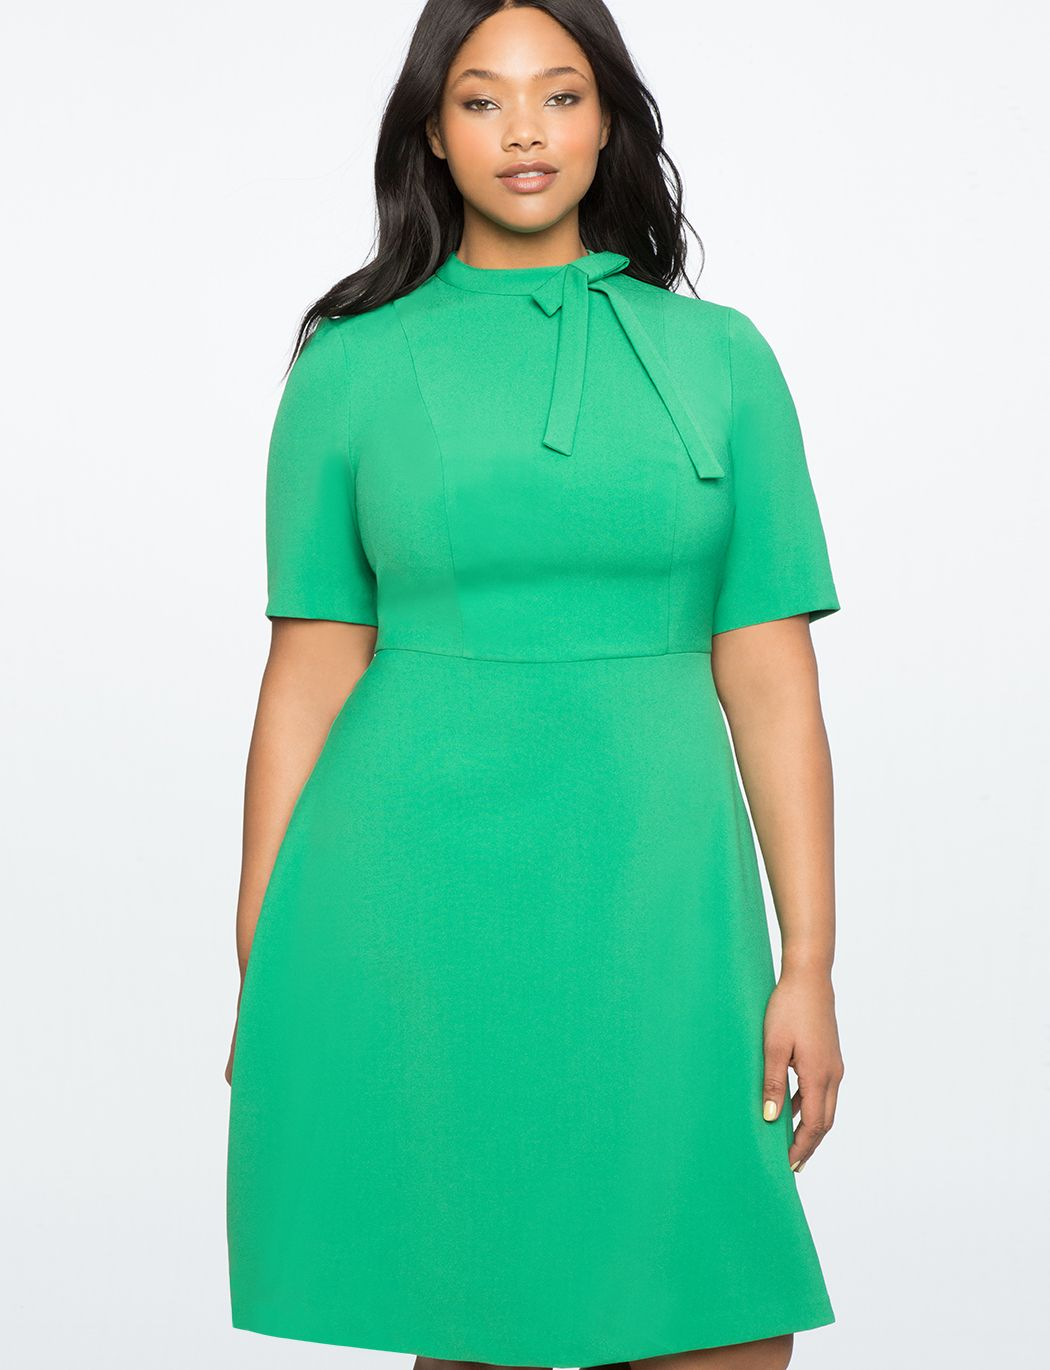 Fit And Flare Work Dress With Bow | Women\'s Plus Size ...